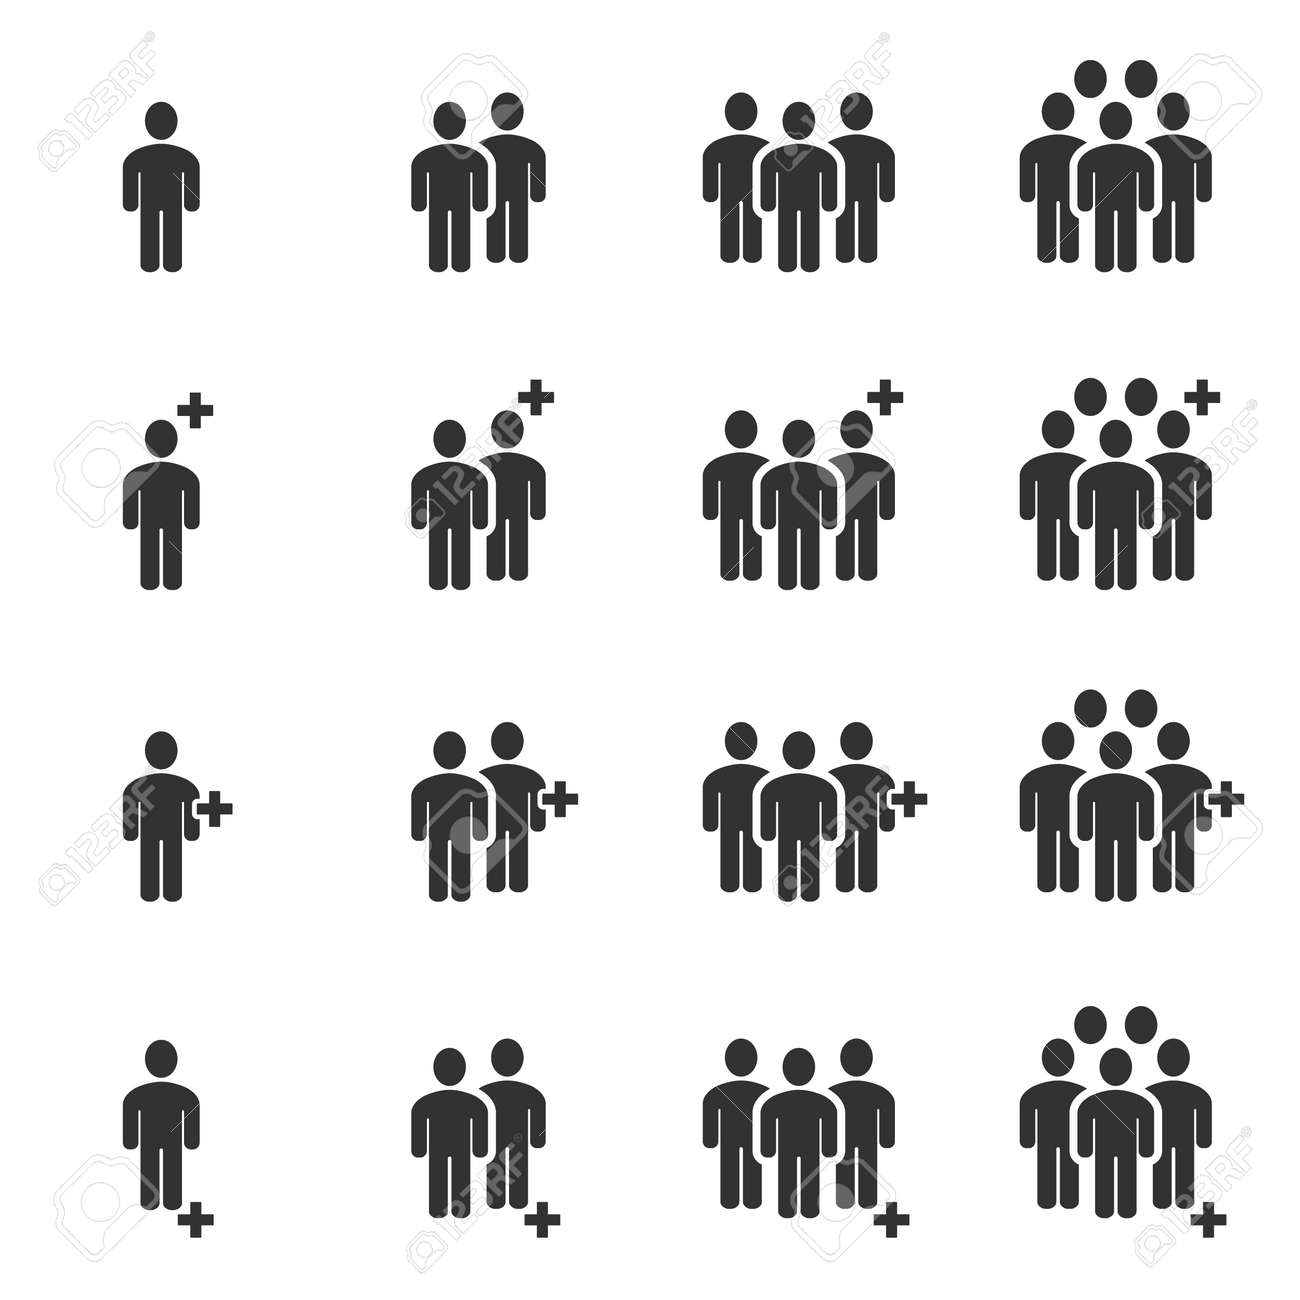 People Icons , Person work group Team Vector - 122520175